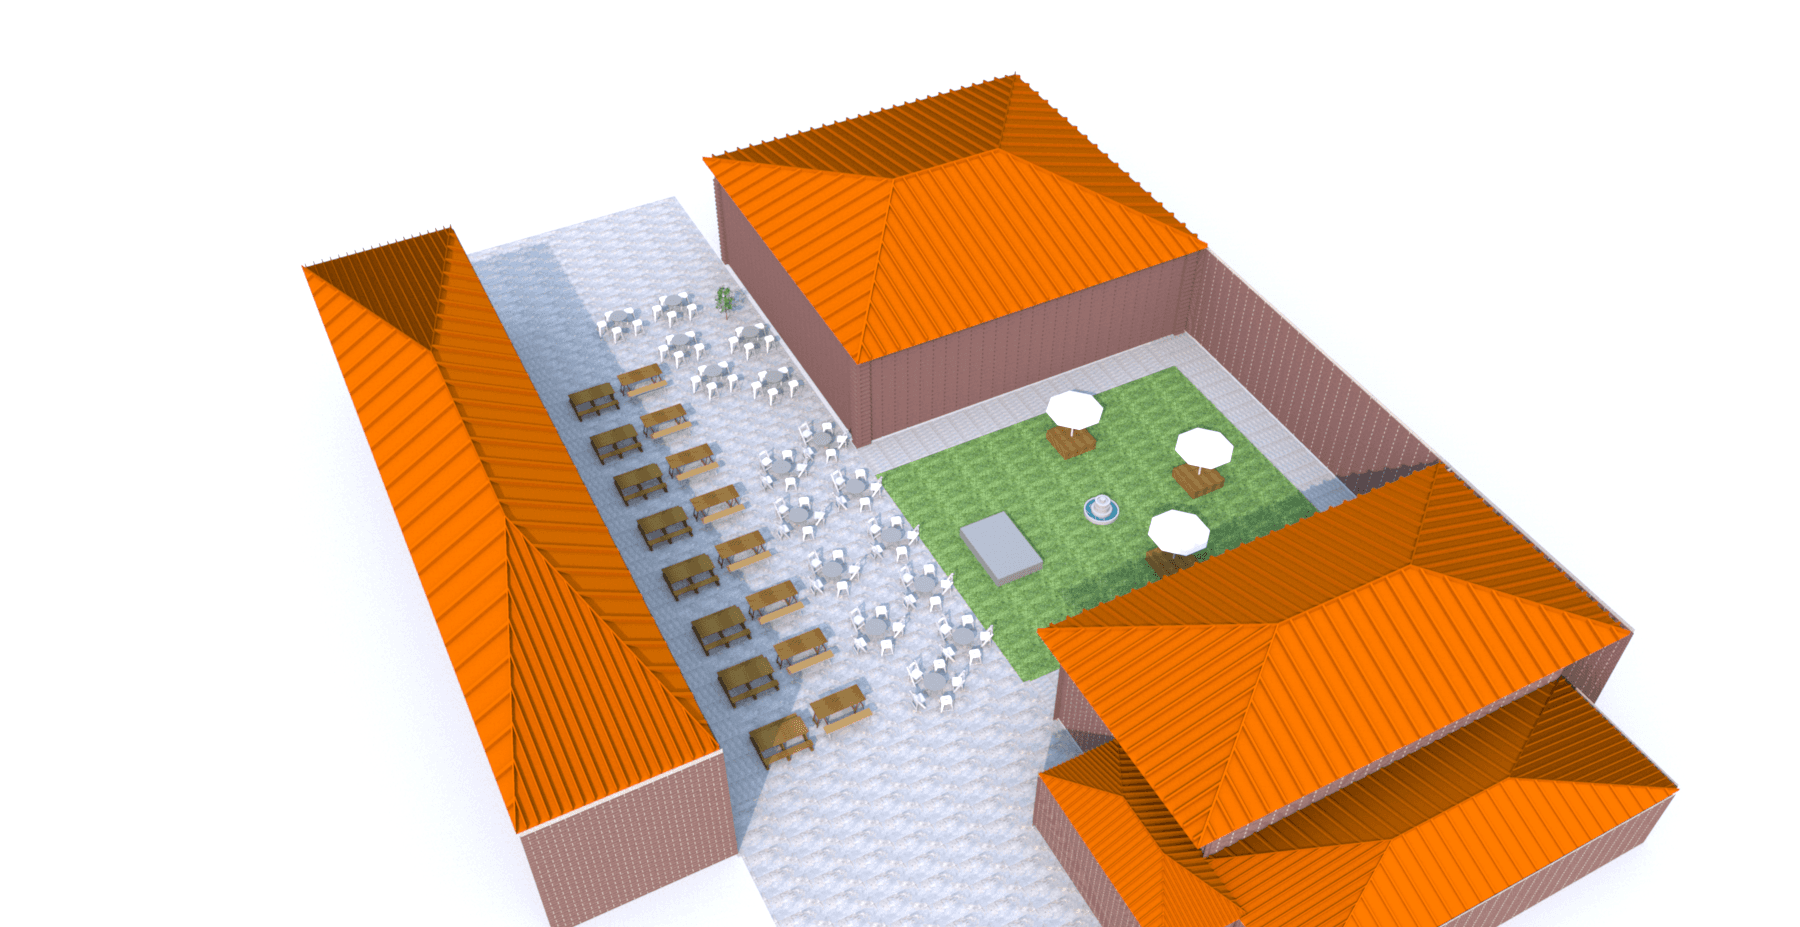 3D design of St. Aloysius outdoor seating